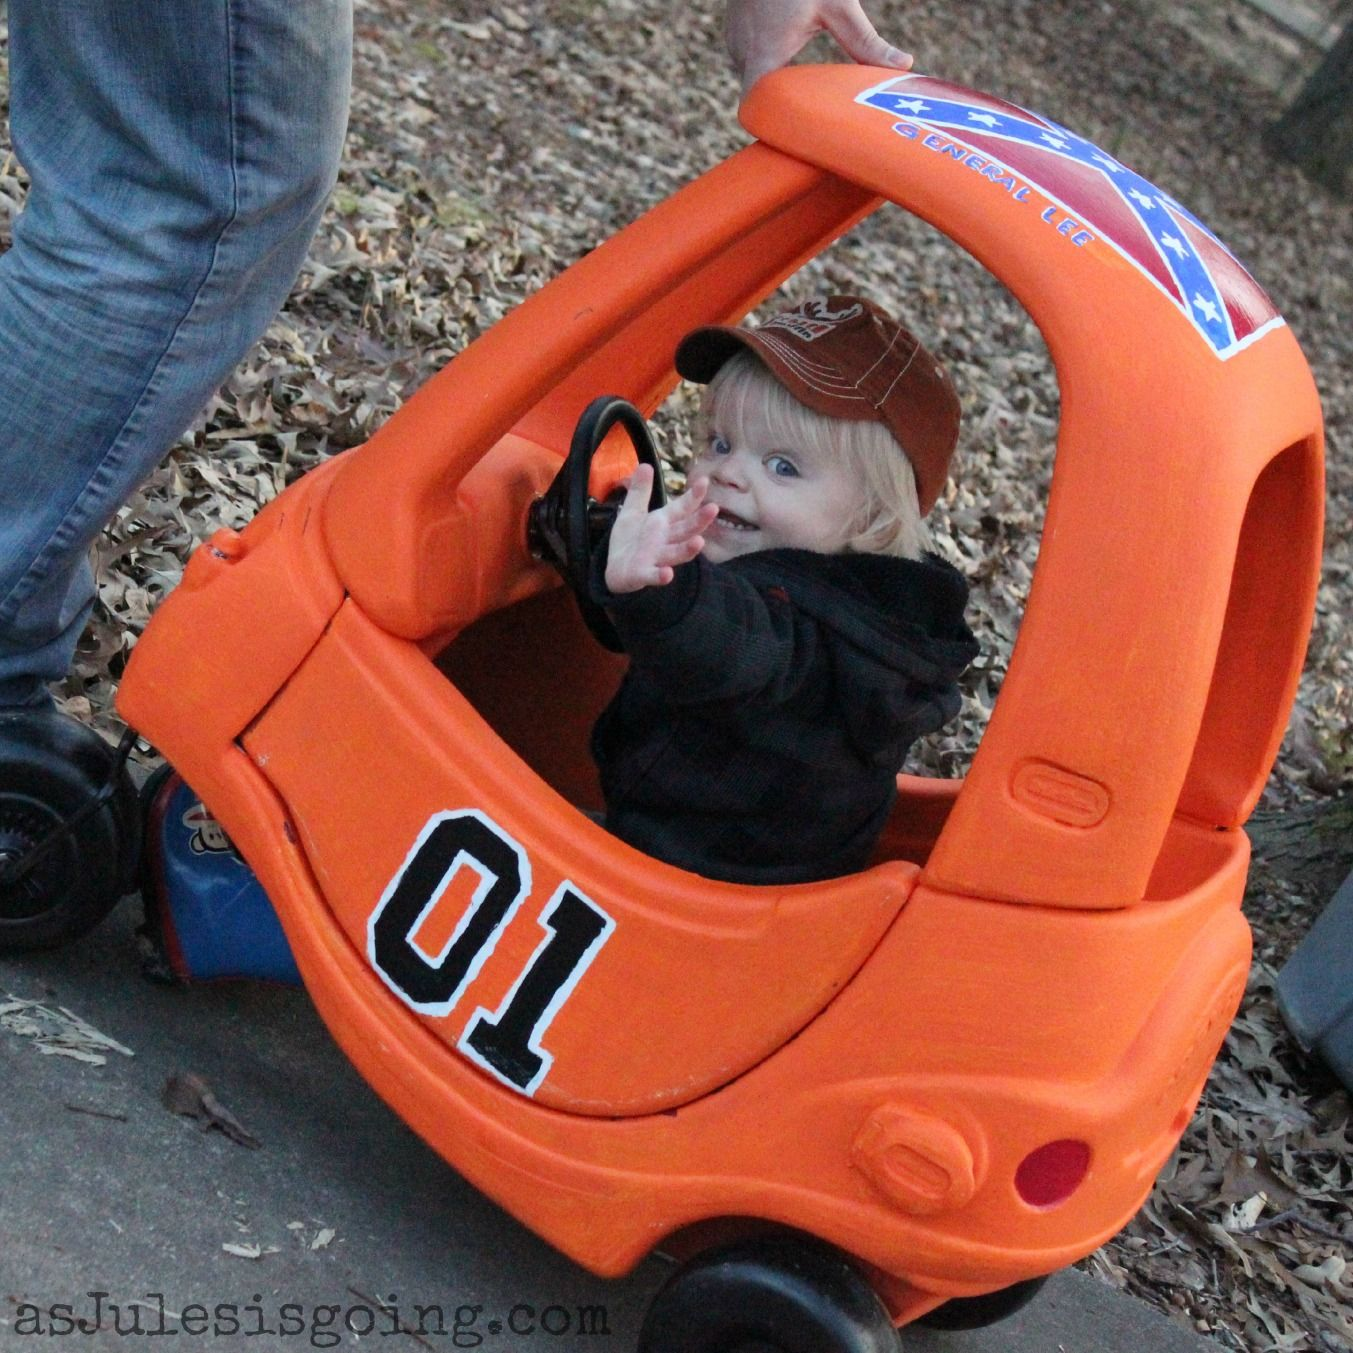 The General Lee Little Tikes Car How To Successful Homemakers General Lee Cozy Coupe Little Tikes